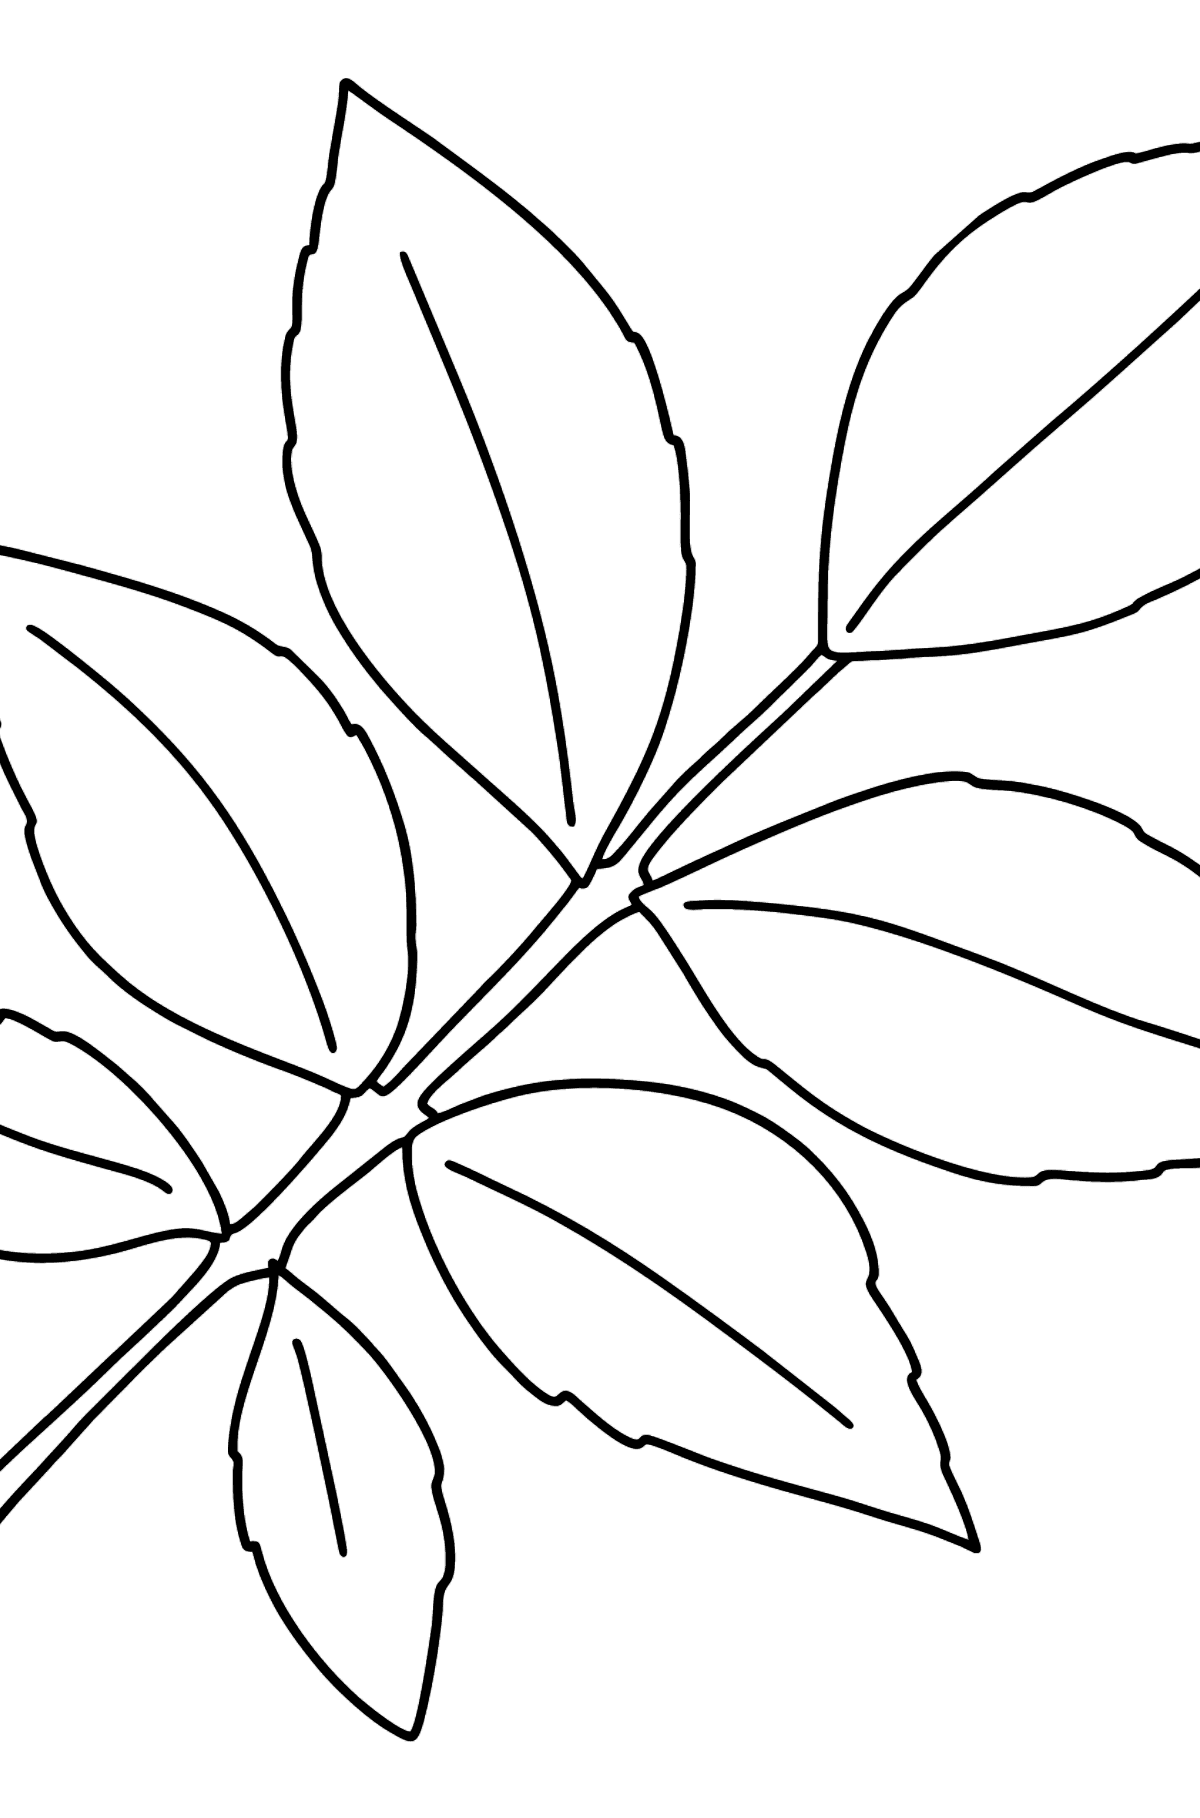 Ash Leaf coloring page - Coloring Pages for Kids